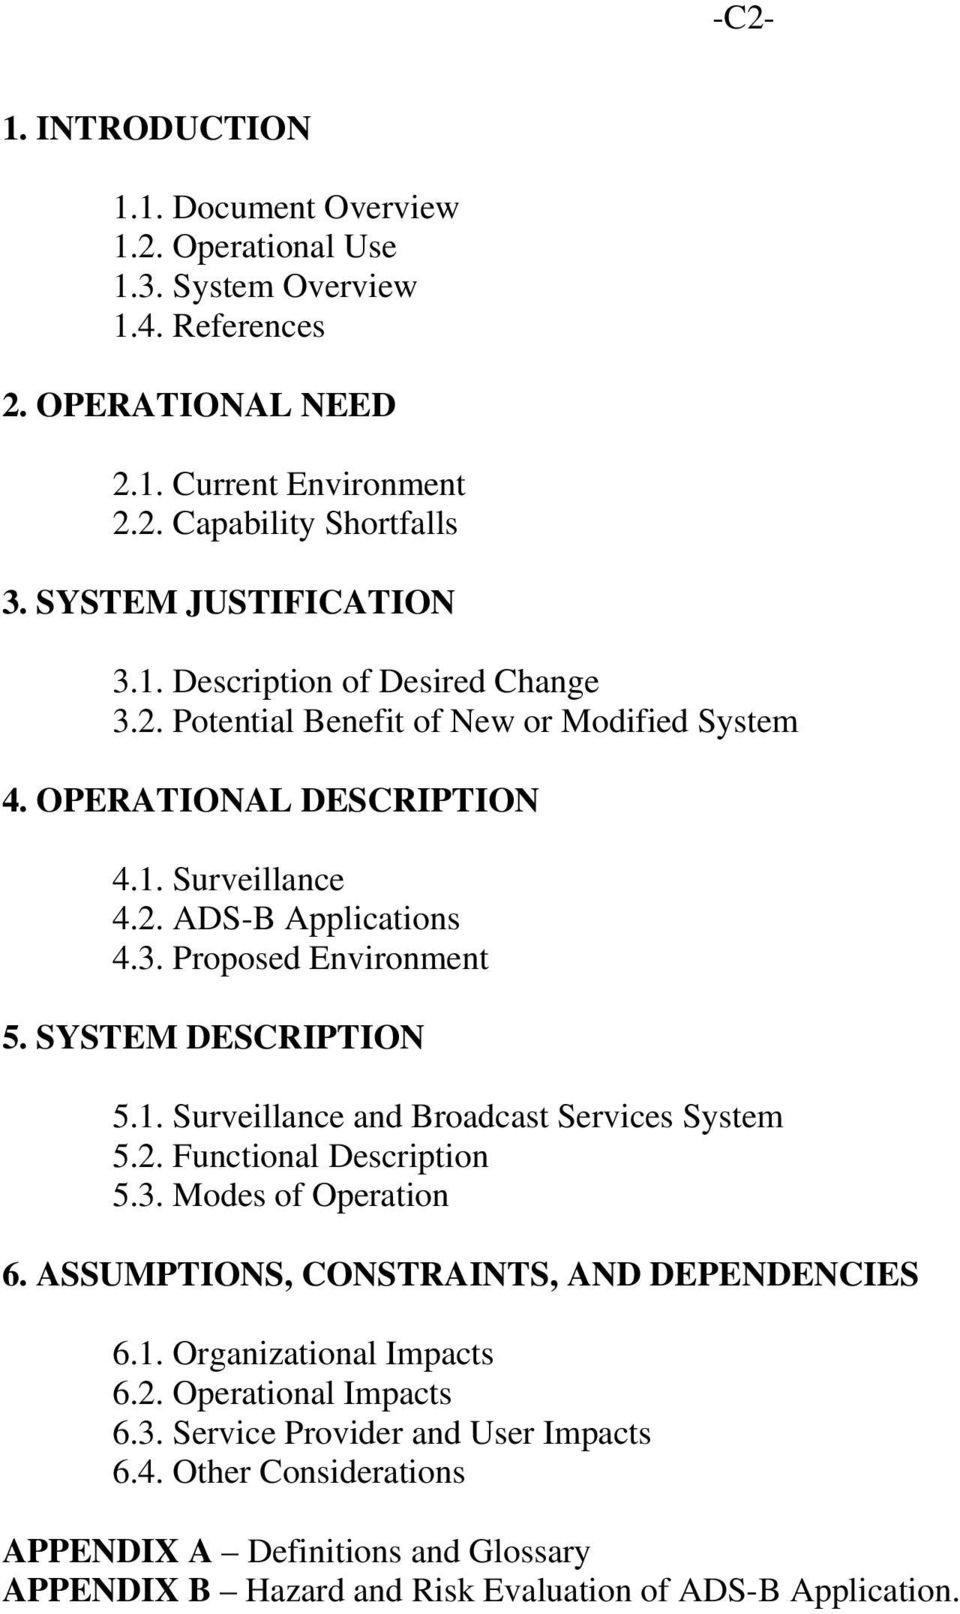 SYSTEM DESCRIPTION 5.1. Surveillance and Broadcast Services System 5.2. Functional Description 5.3. Modes of Operation 6. ASSUMPTIONS, CONSTRAINTS, AND DEPENDENCIES 6.1. Organizational Impacts 6.